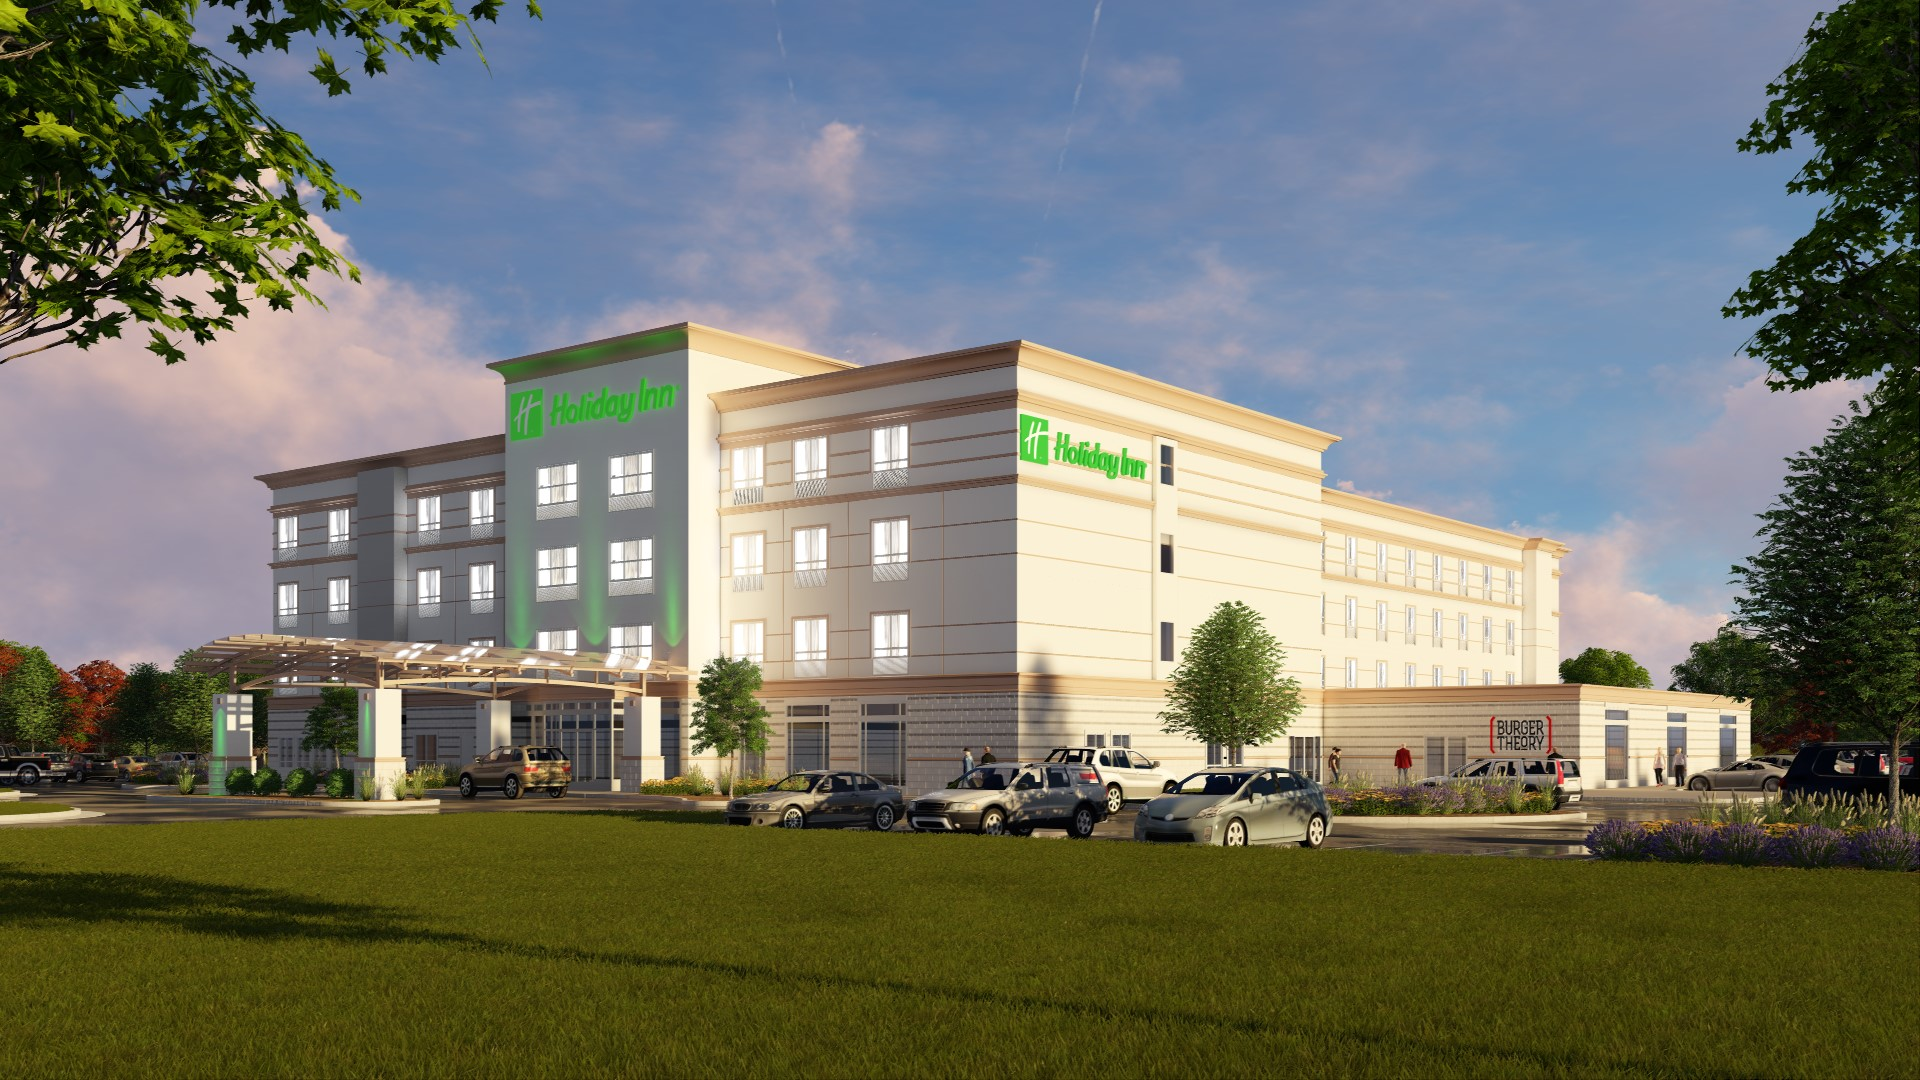 Look for two new hospitality options at the Hunt Midwest Commerce Center in 2018: a SpringHill Suites by Marriott and a Holiday Inn Hotel & Suites.